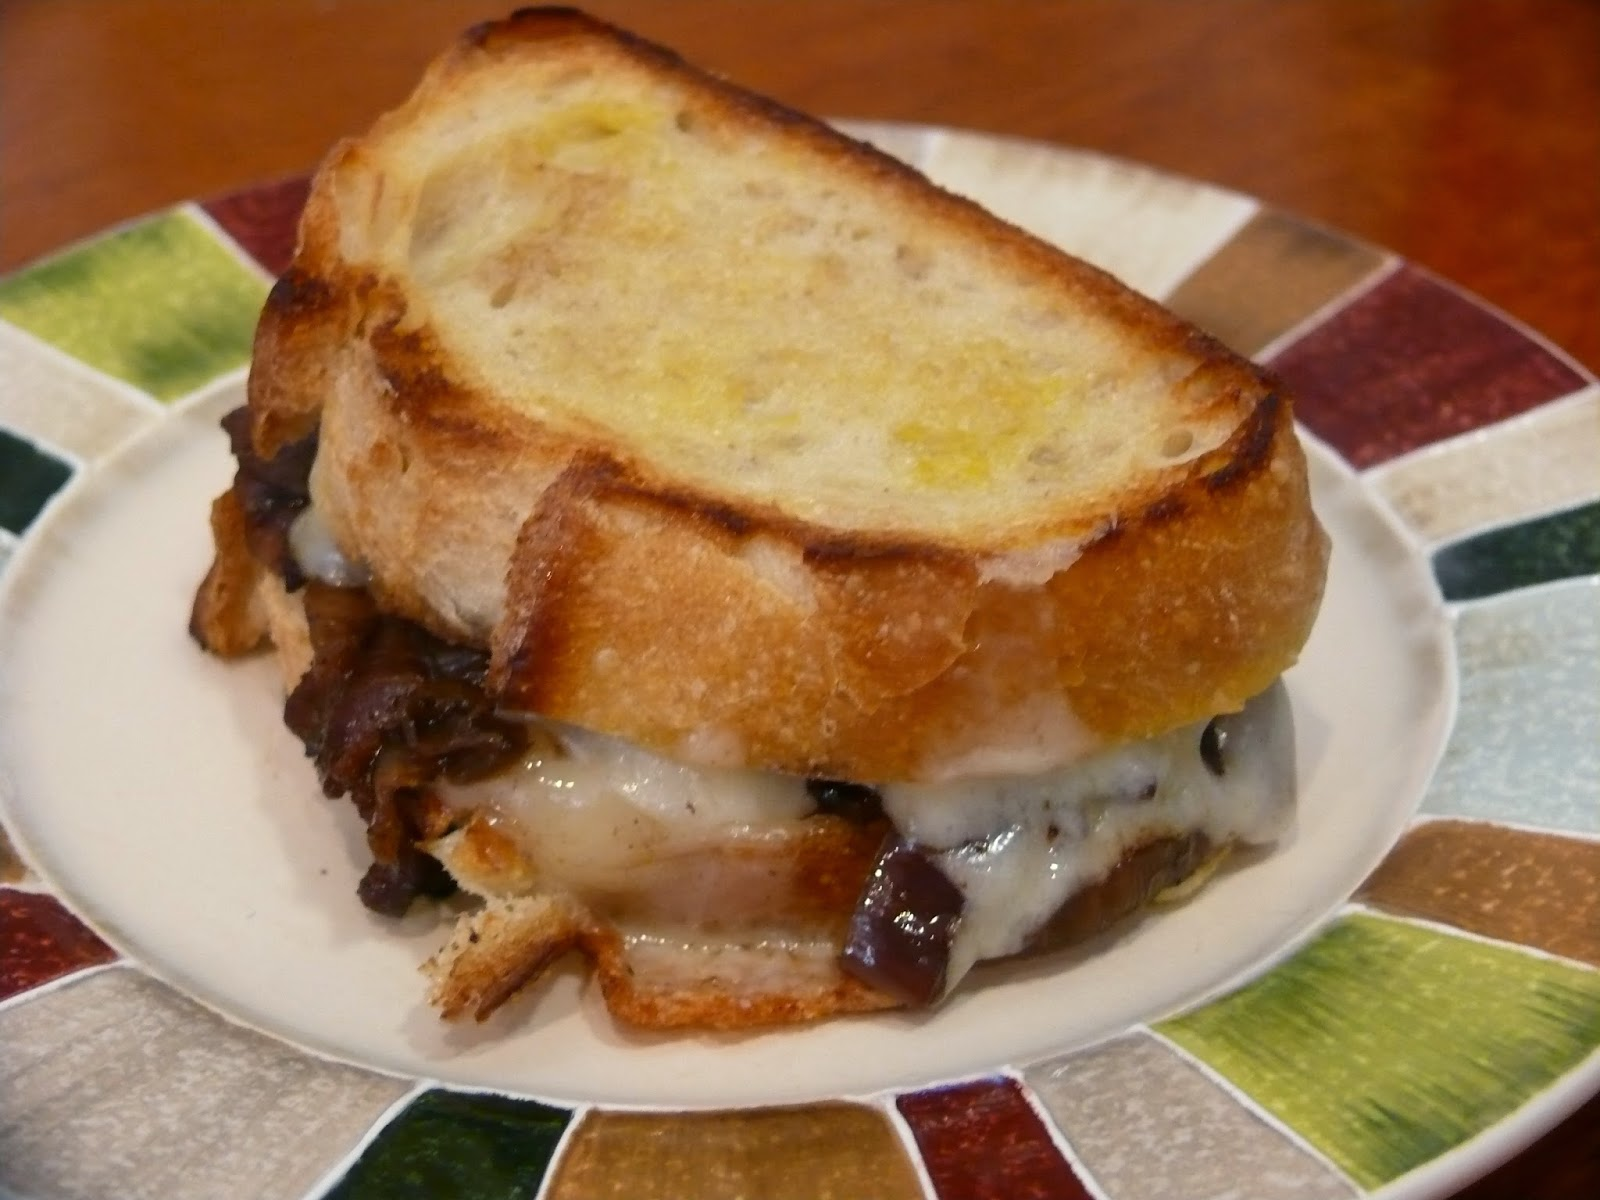 ... & Fabulous: Balsamic & Bacon Caramelized Onion Grilled Cheese